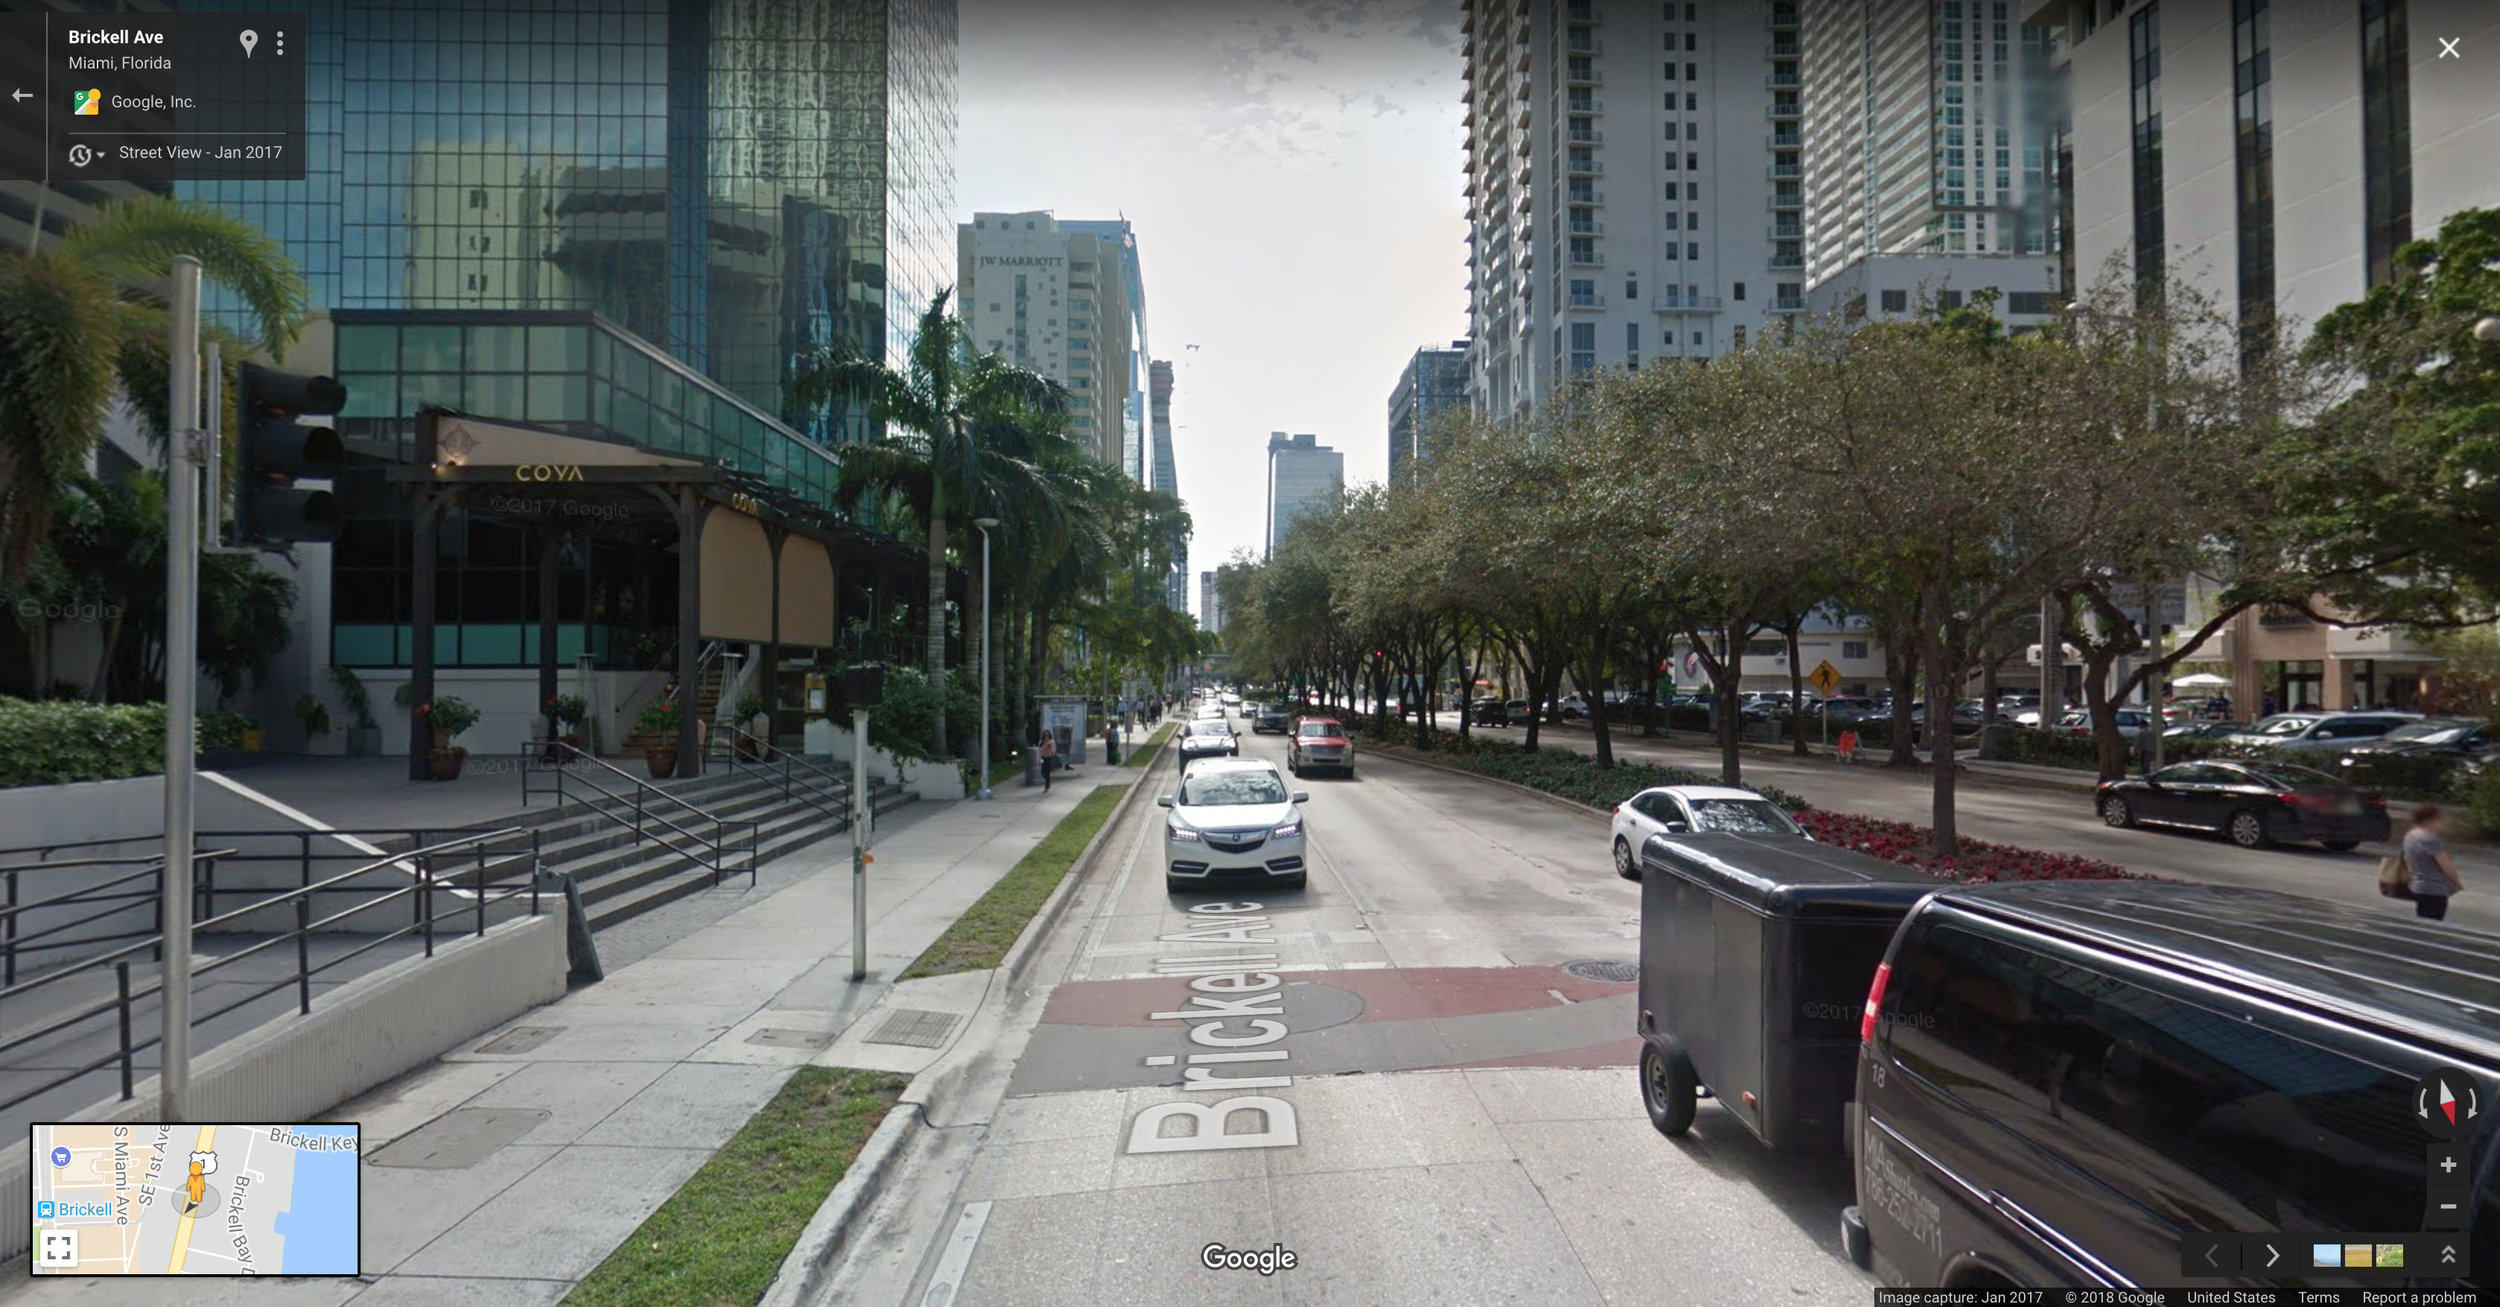 What 27,302 people per square mile looks like at street level.